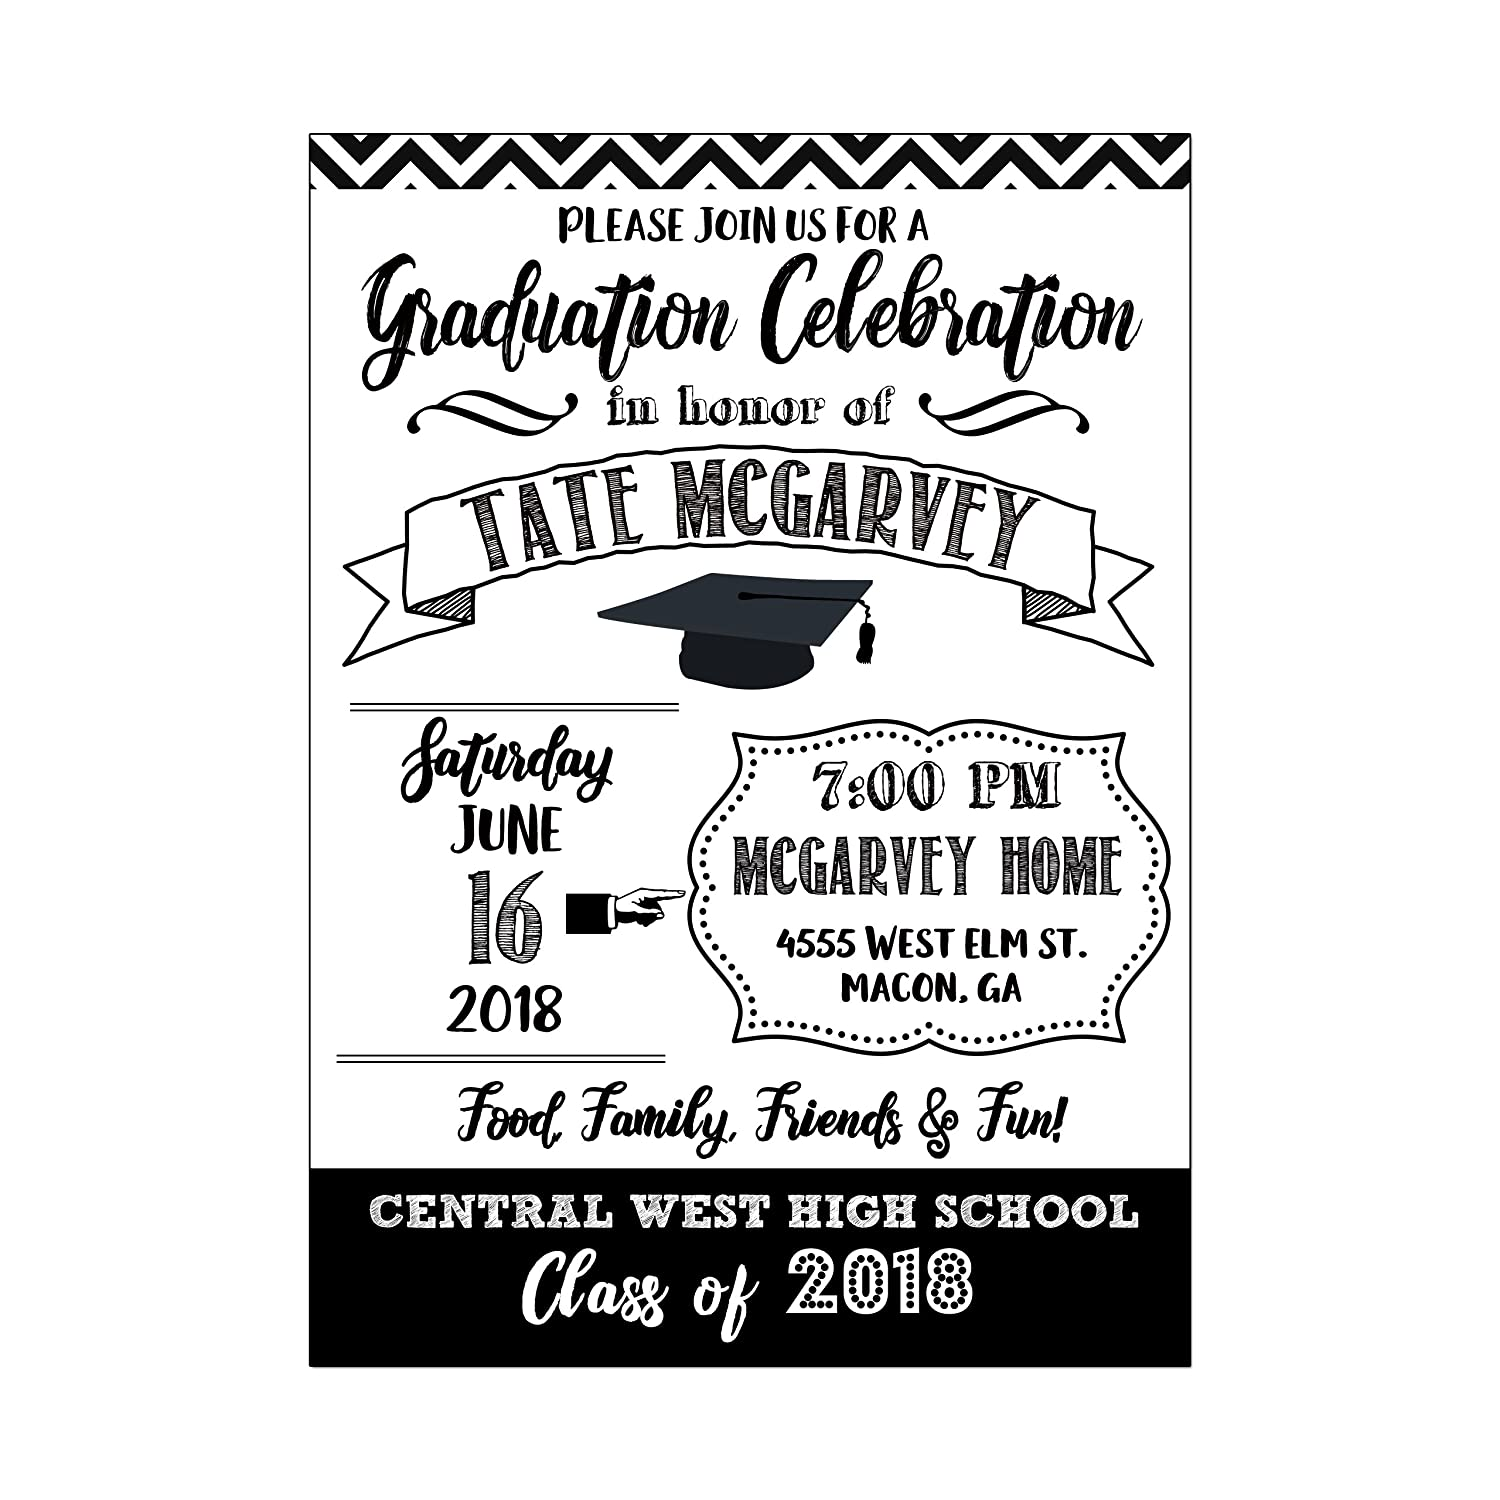 Amazon.com: Black and White Modern Graduation Invitation, High School Graduation  or College Graduation Invitations, Set of 10 printed invitations: Handmade